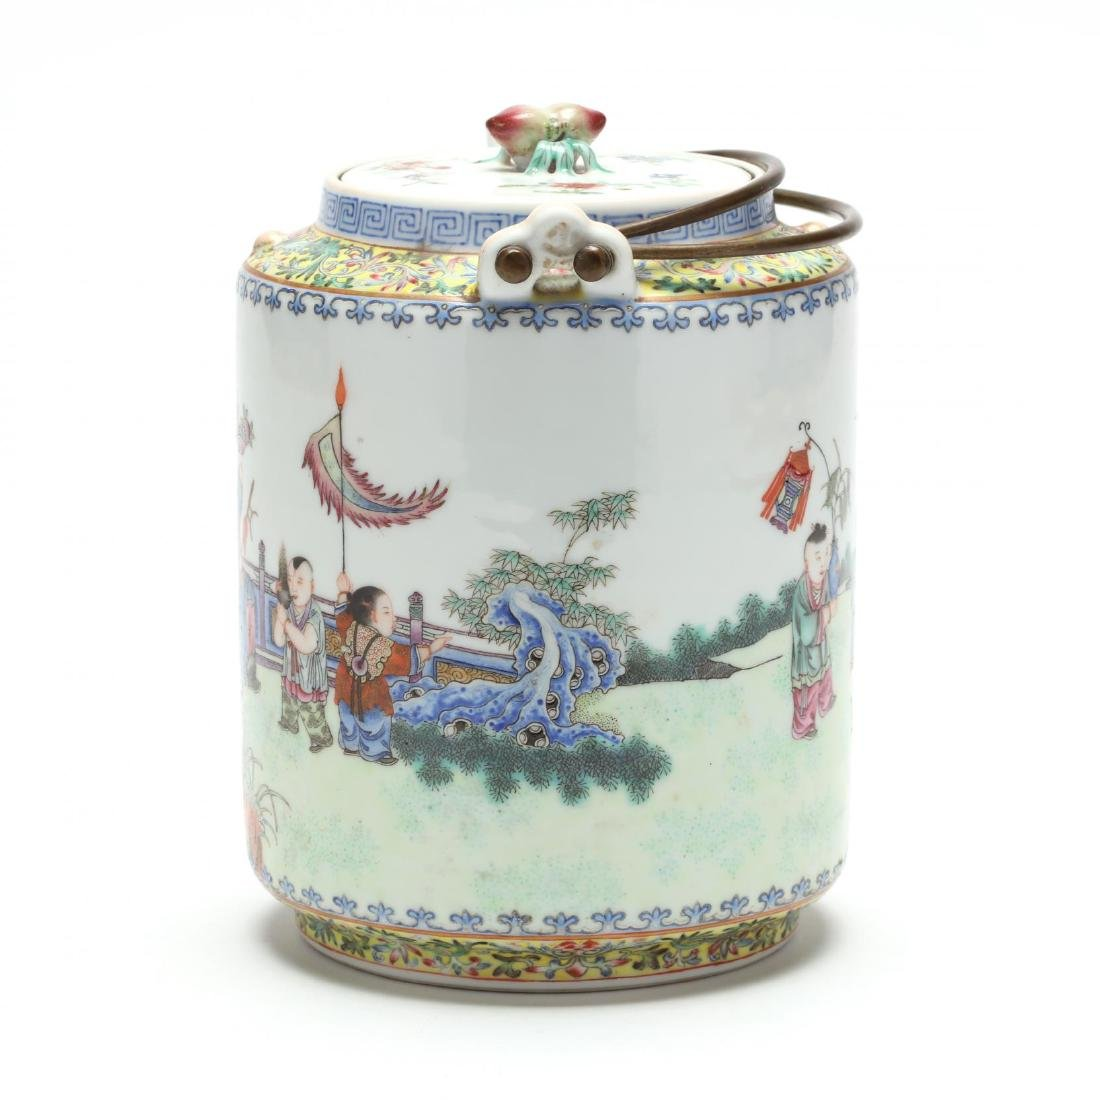 A Chinese Qing Dynasty Porcelain Teapot - 4